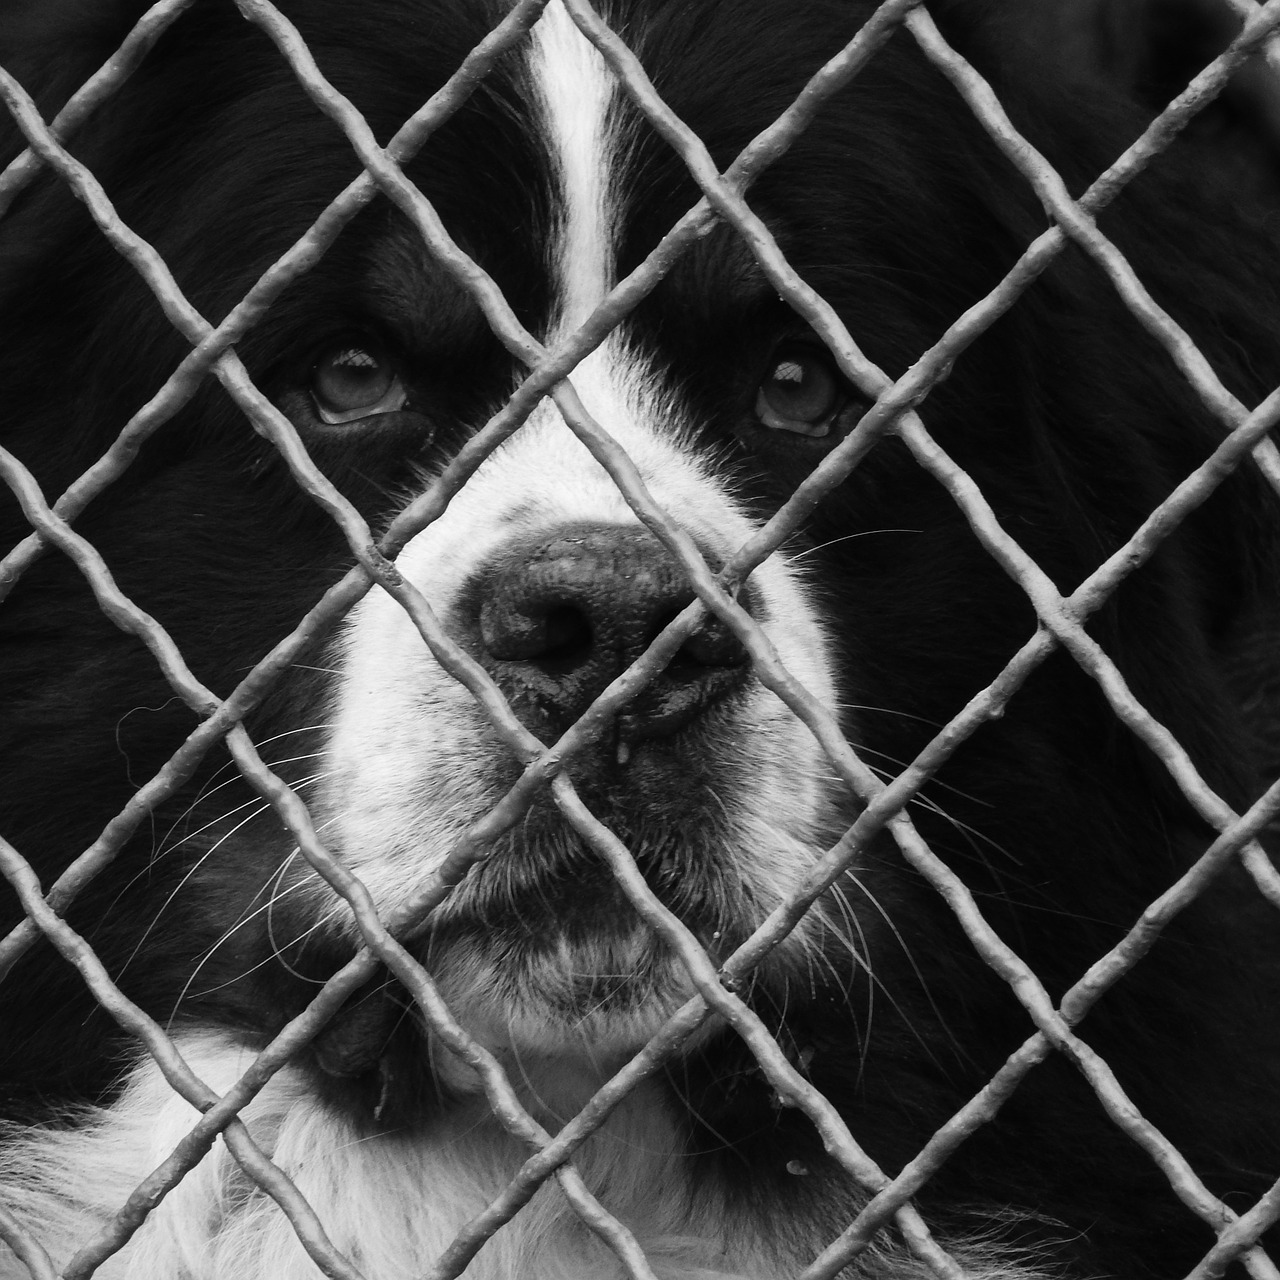 Humans can spot that this is a dog behind a fence. But can a CNN?